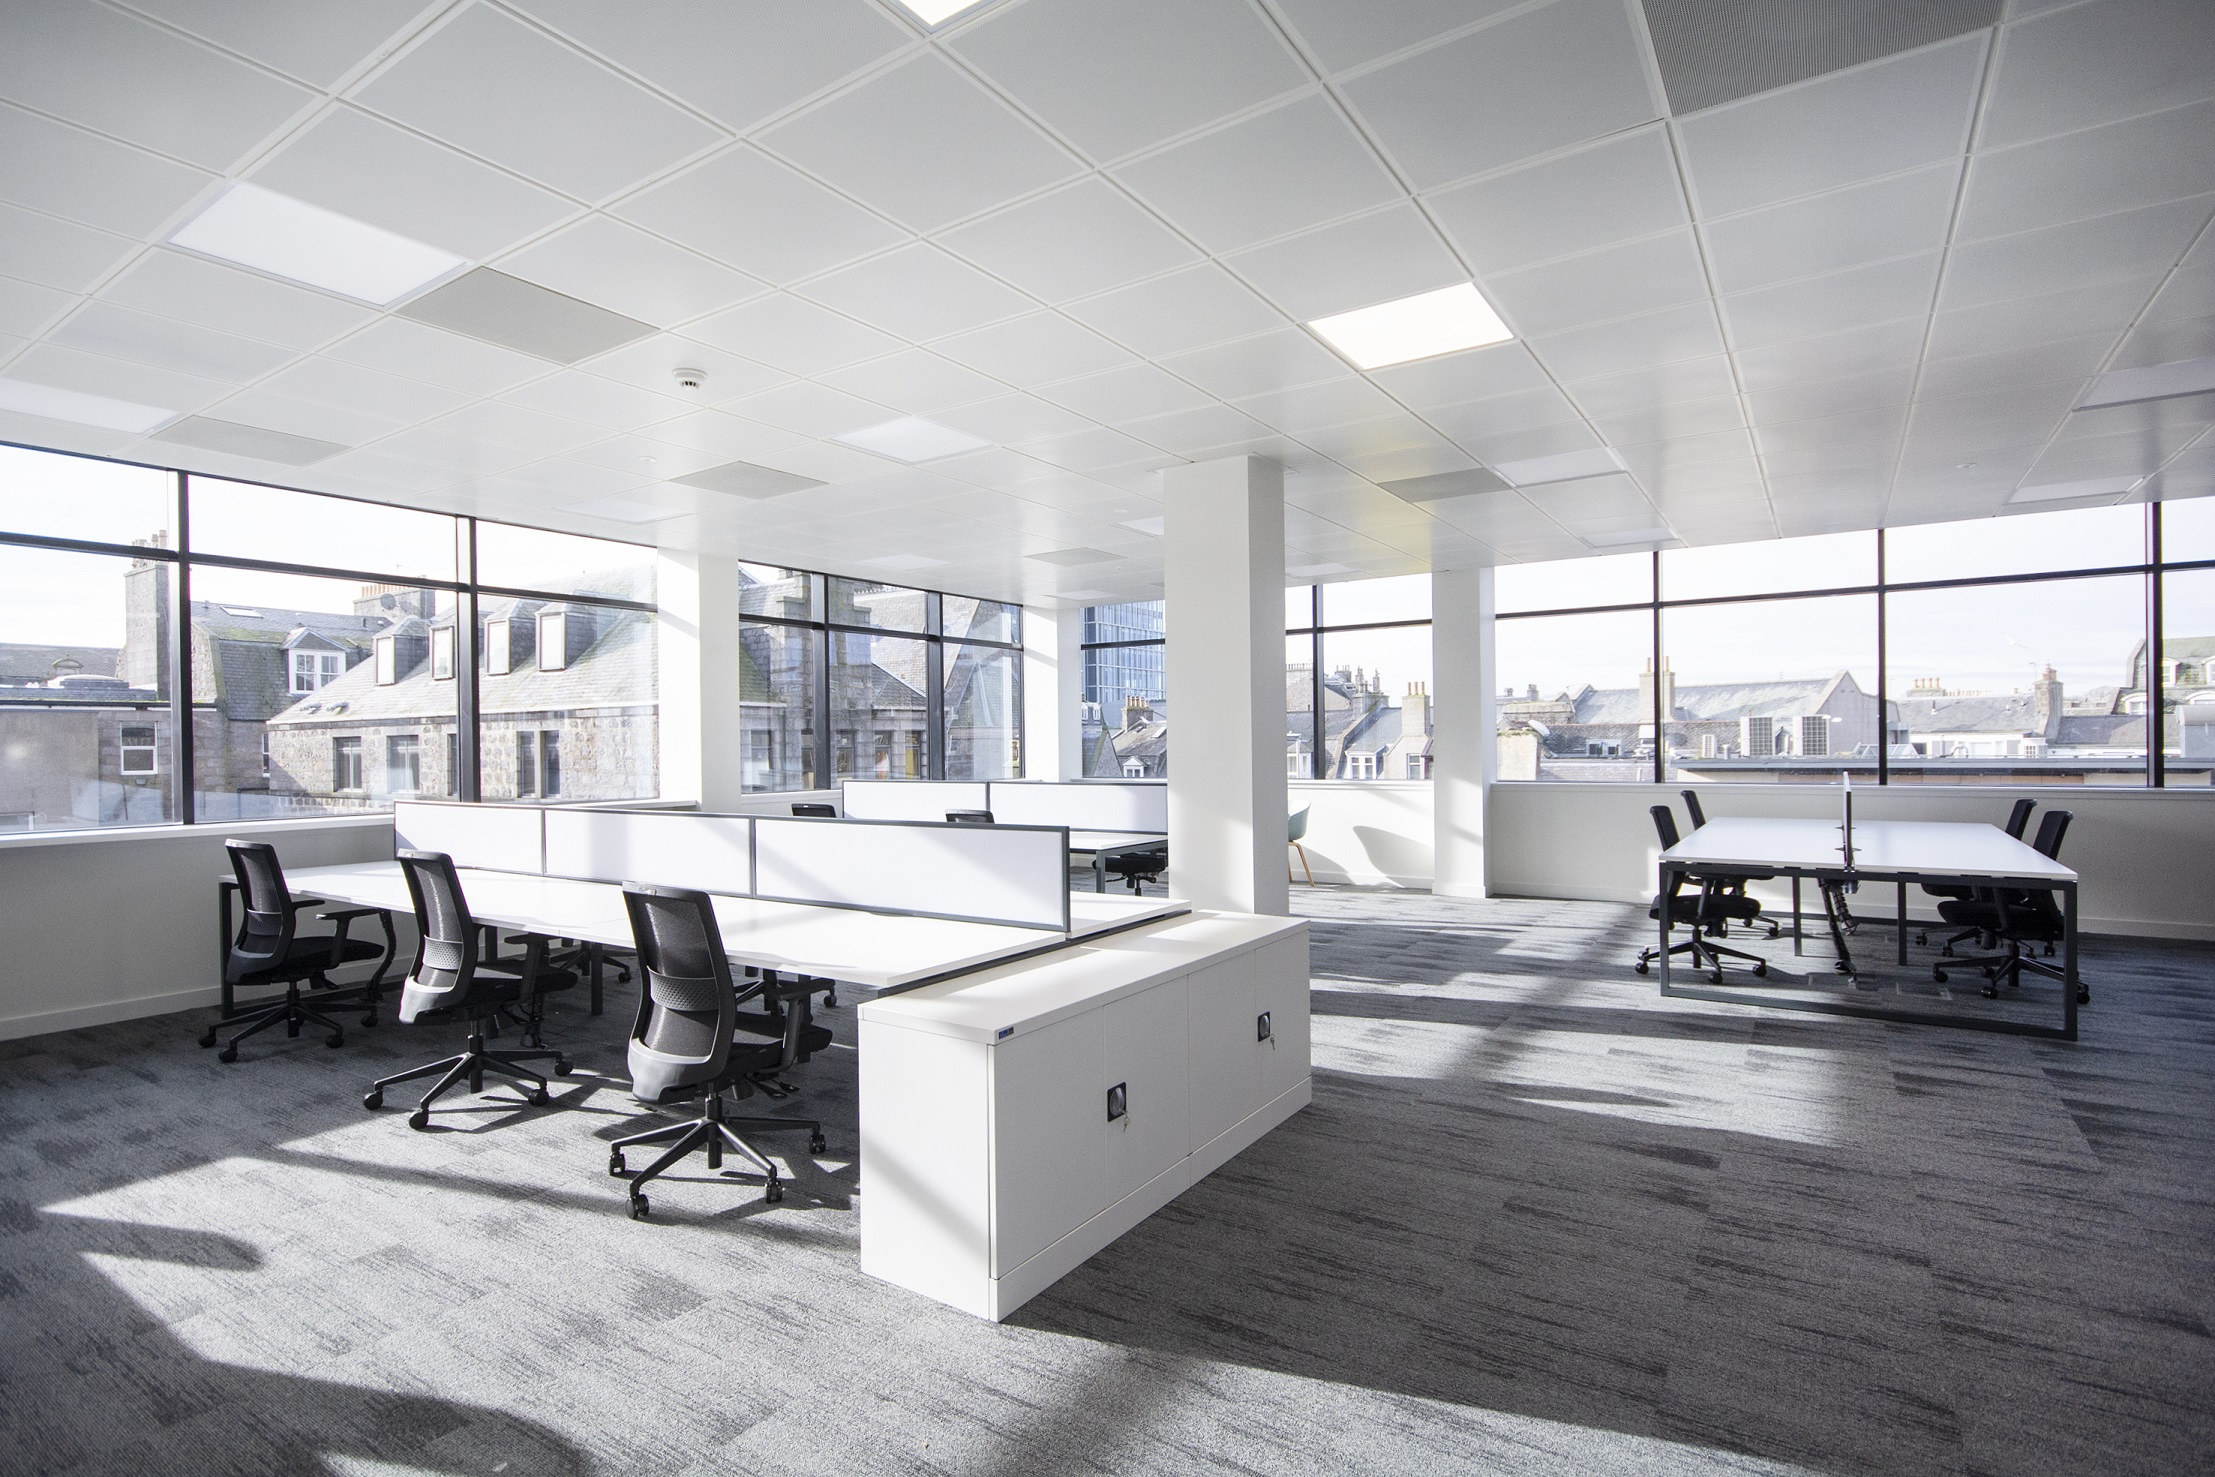 Edinburgh building consultancy Paragon advises on Legal & General's £1.8m 'capsule' refurb of Aberdeen's 120,000 sq ft Union Plaza offices